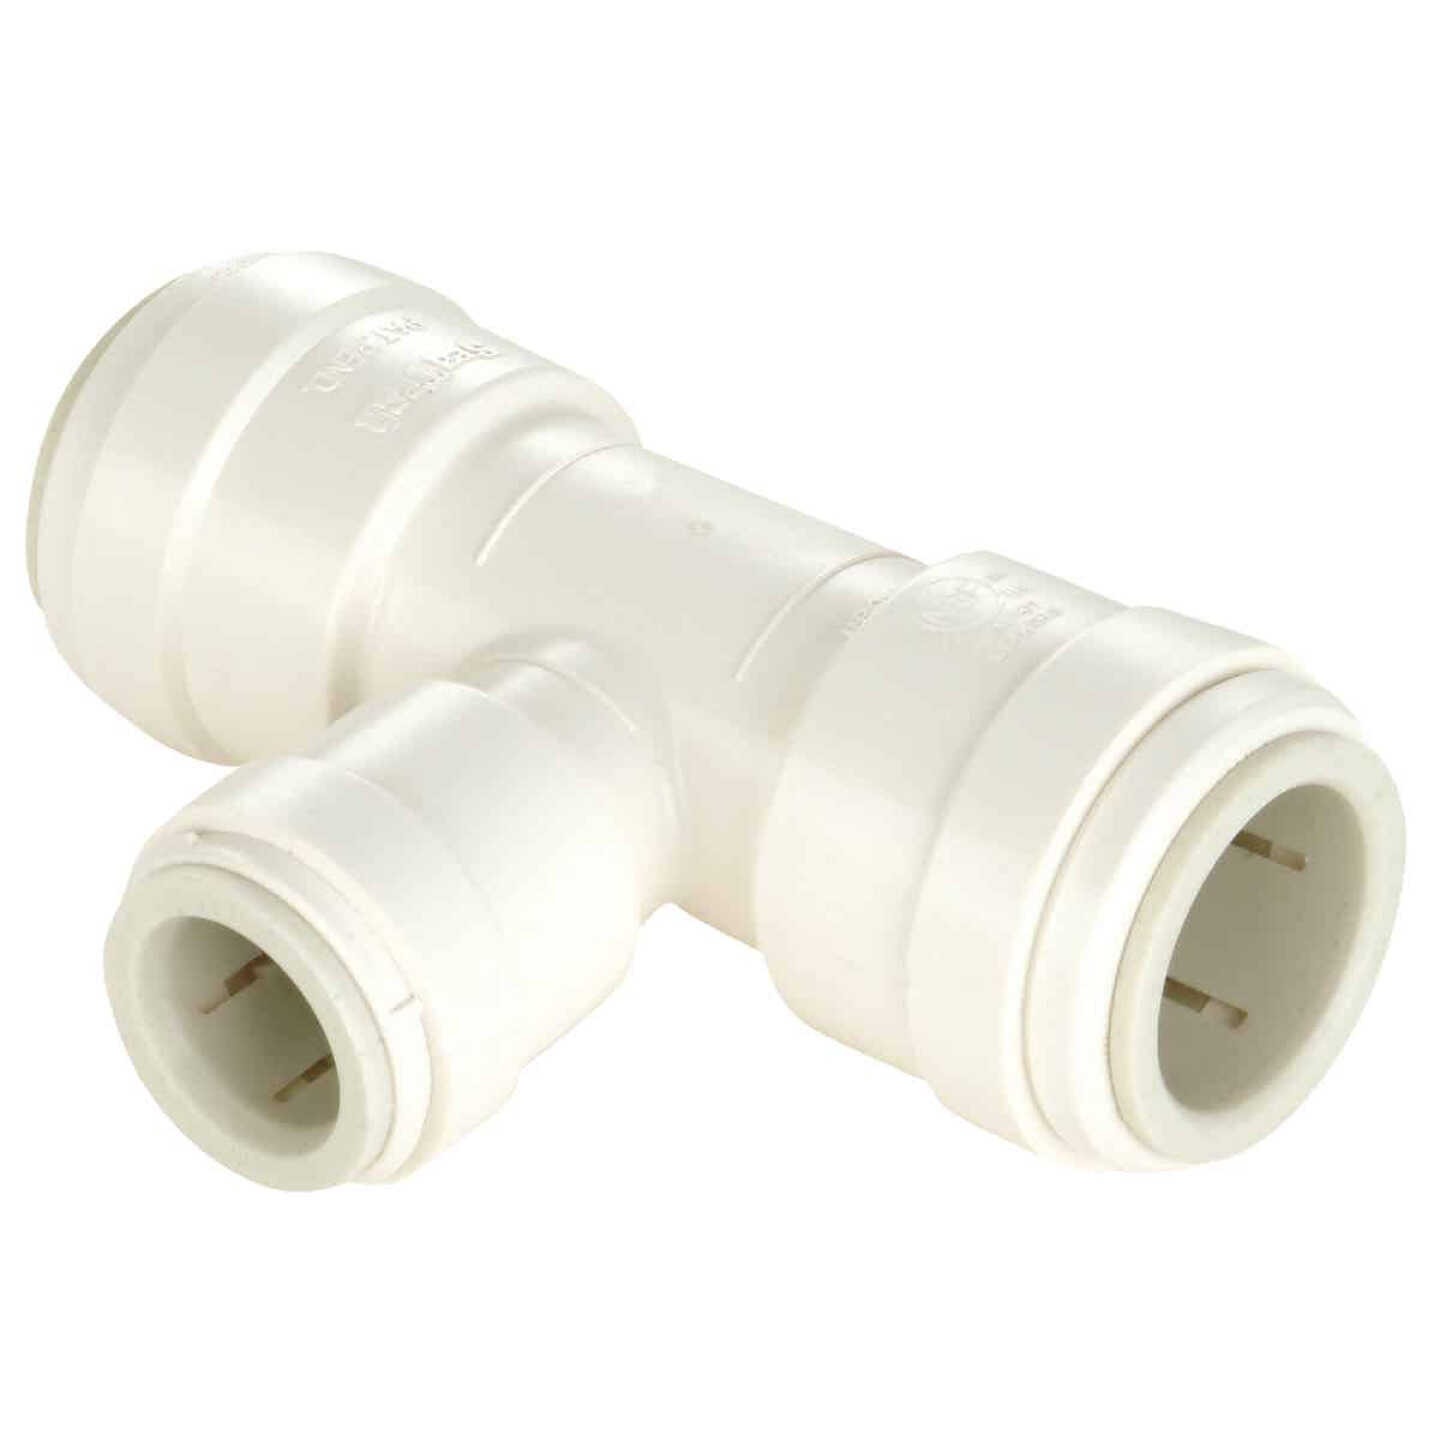 Watts 3/4 In. x 3/4 In. x 1/2 In. Reducing Quick Connect Plastic Tee Image 1